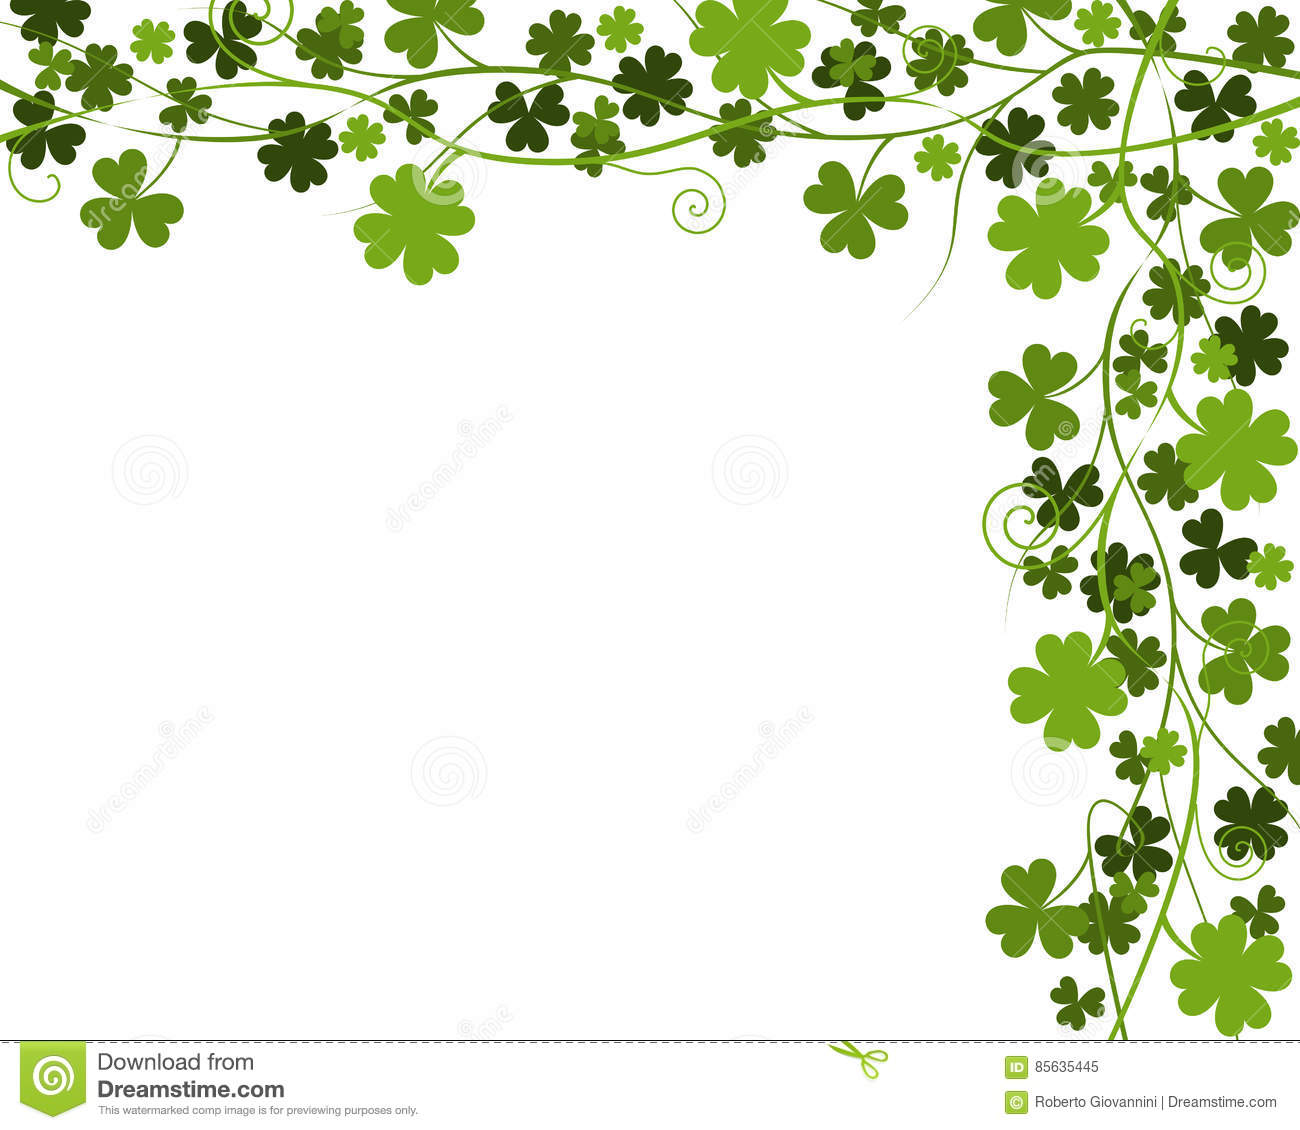 Four Leaf Clover Border & Free Four Leaf Clover Border.png.